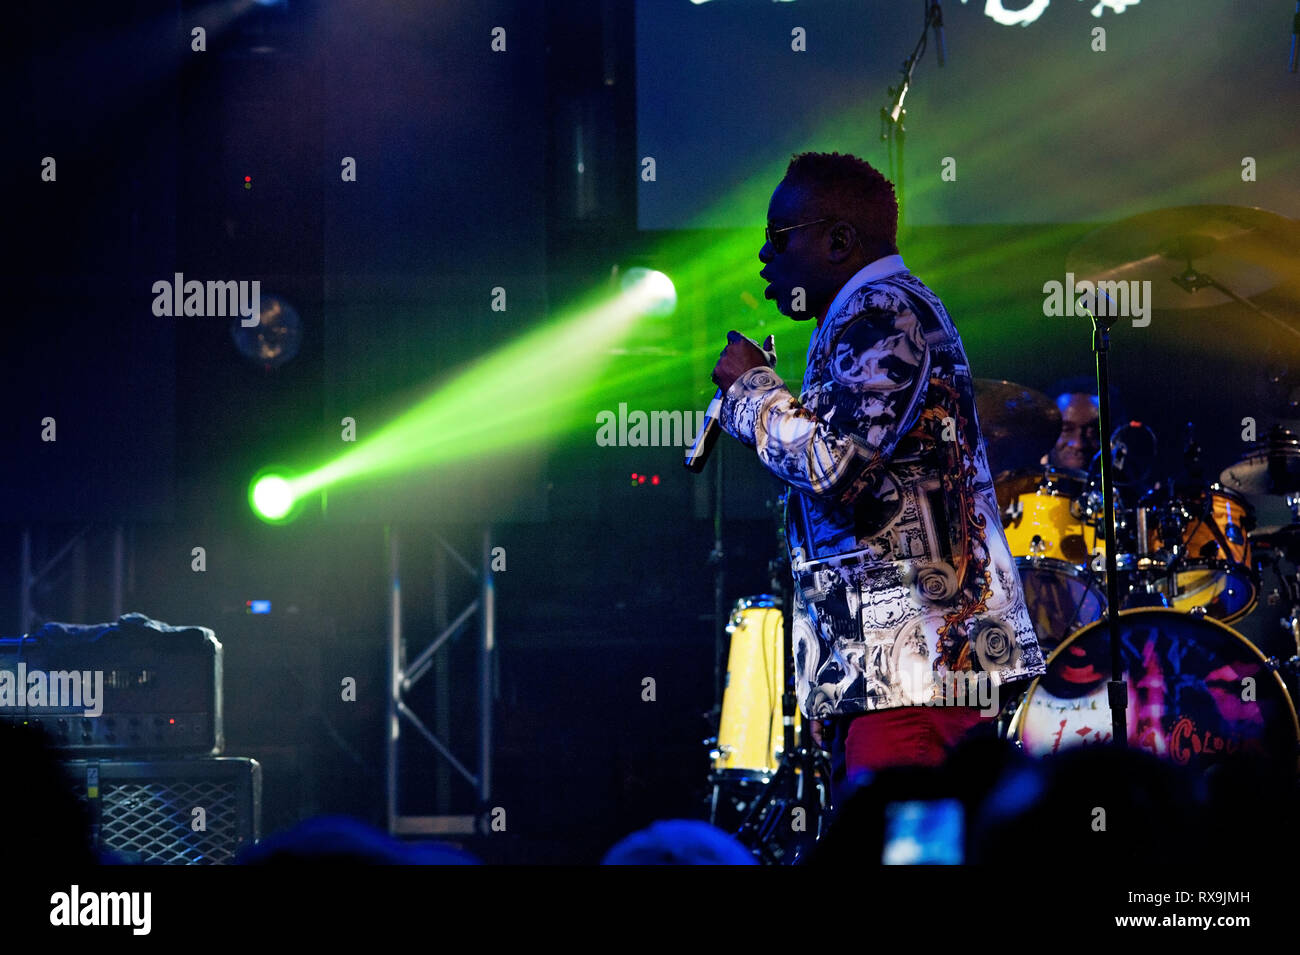 Corey Glover, vocalist for the band, 'Living Colour' performing for a show held at the Culture Room in Ft. Lauderdale, Florida on October 27, 2017. - Stock Image